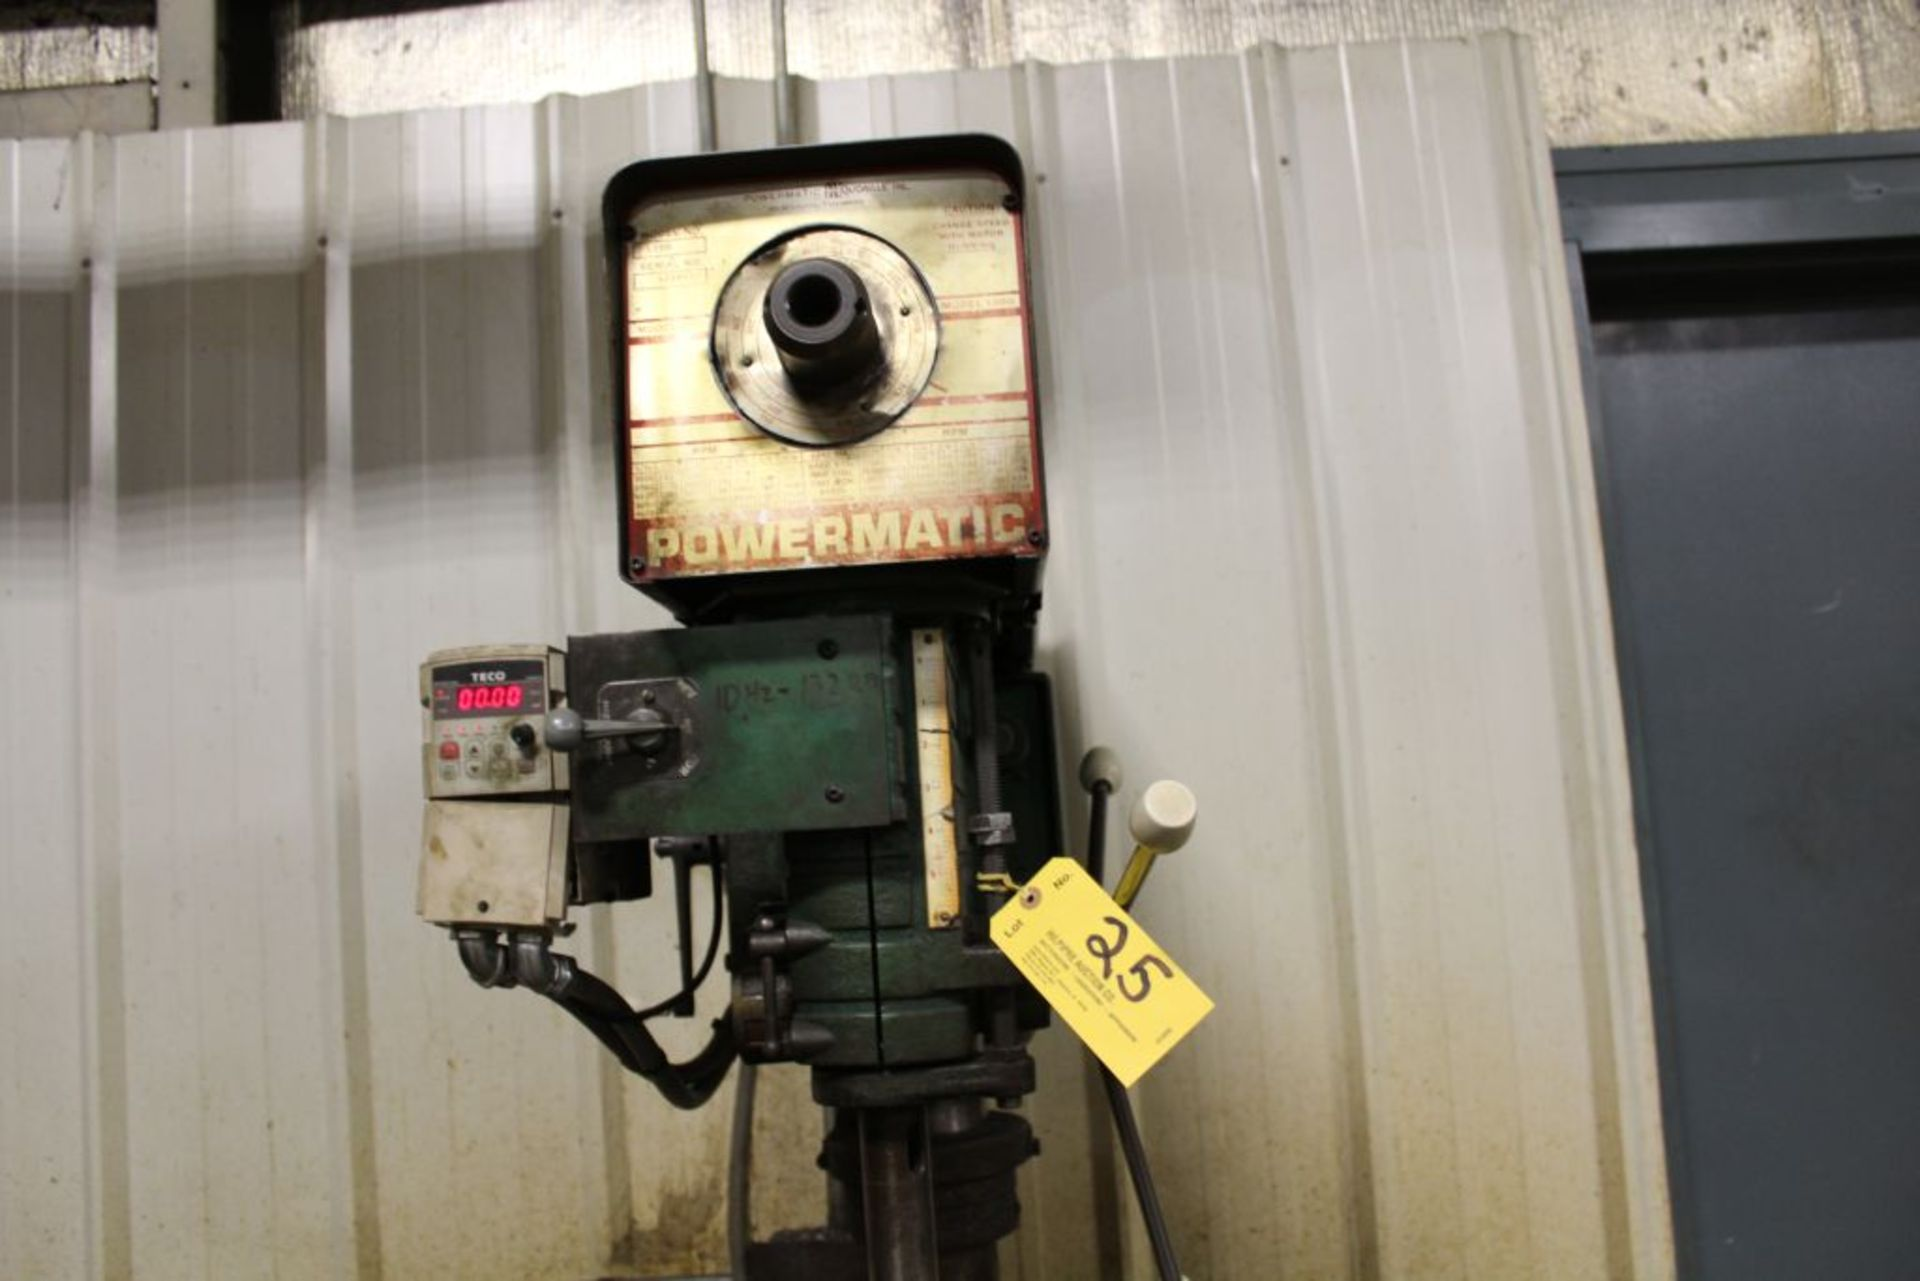 Lot 025 - Powermatic model 1200, sn 520V173, Teco VFD. Sells with owners confirmation.